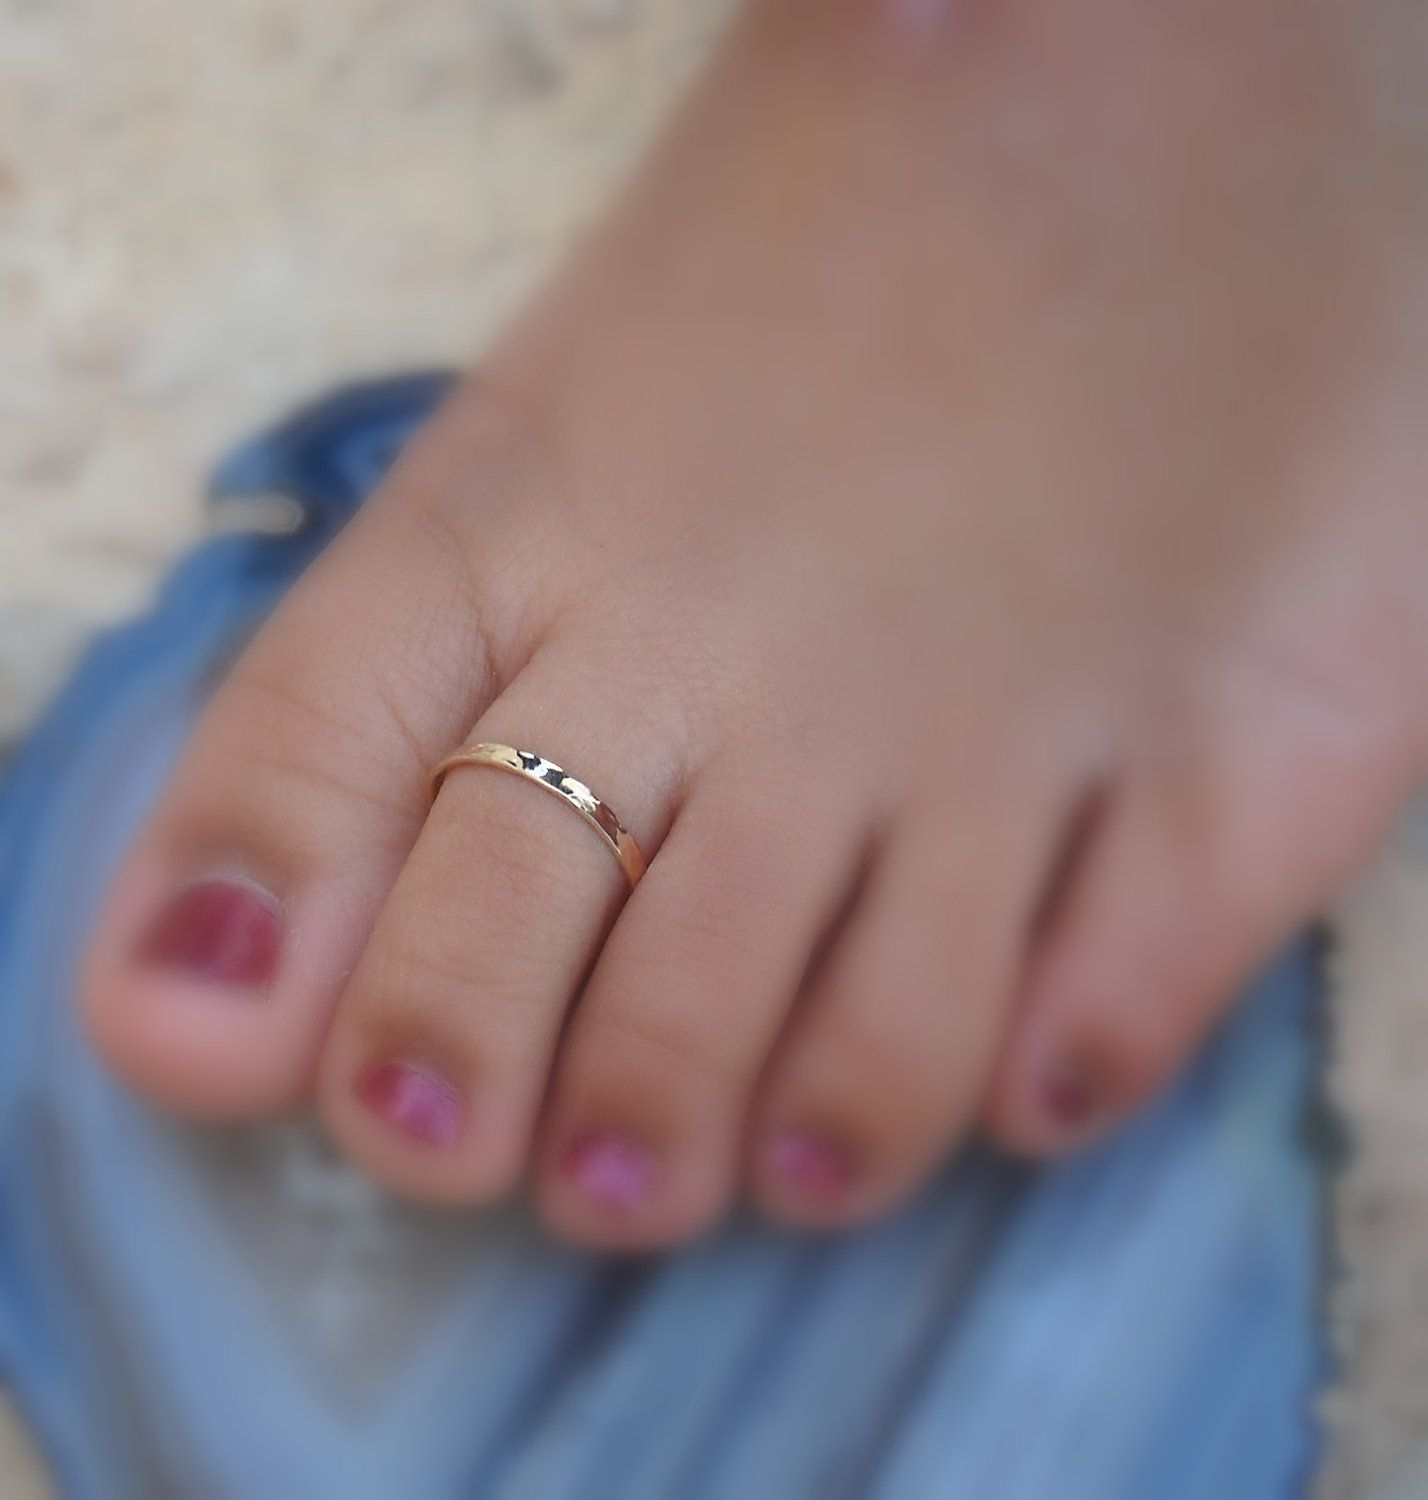 Cute Simple Toe Ring (View 13 of 15)